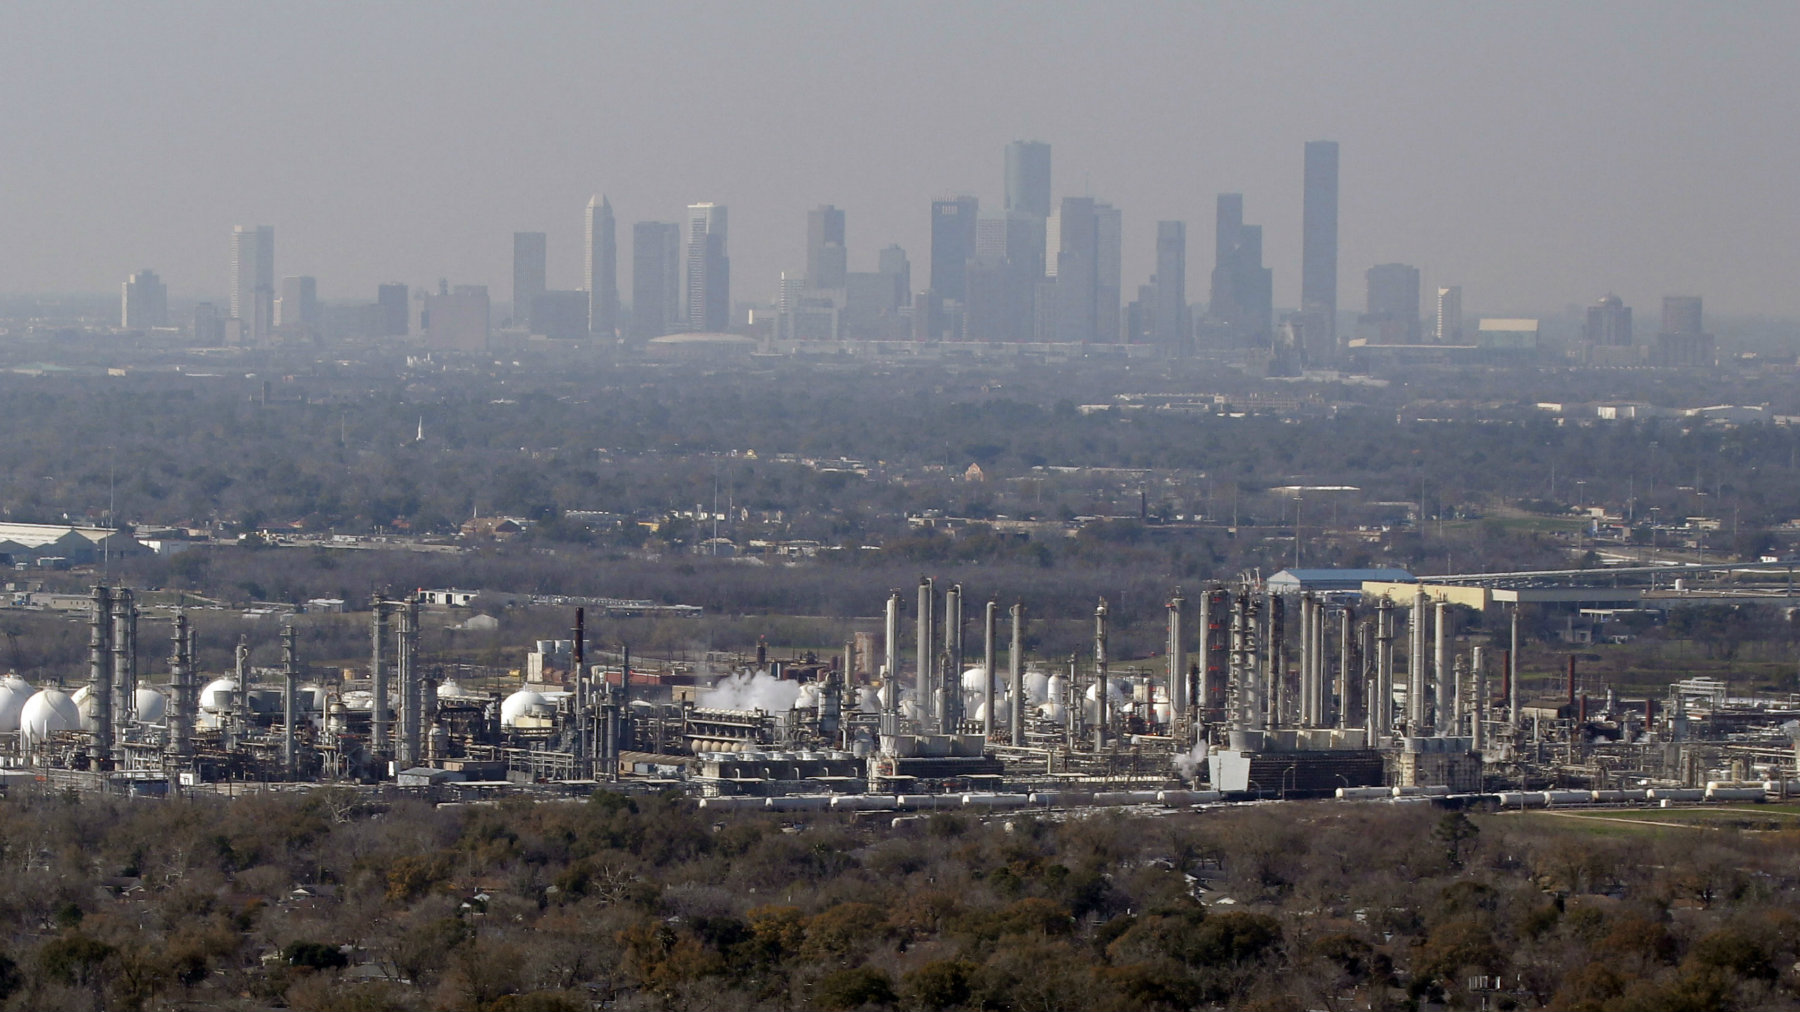 Petrochemical plants and refineries are shown in this aerial view Friday, Jan. 21, 2011 in Deer Park, Texas near downtown Houston. (AP Photo/David J. Phillip)